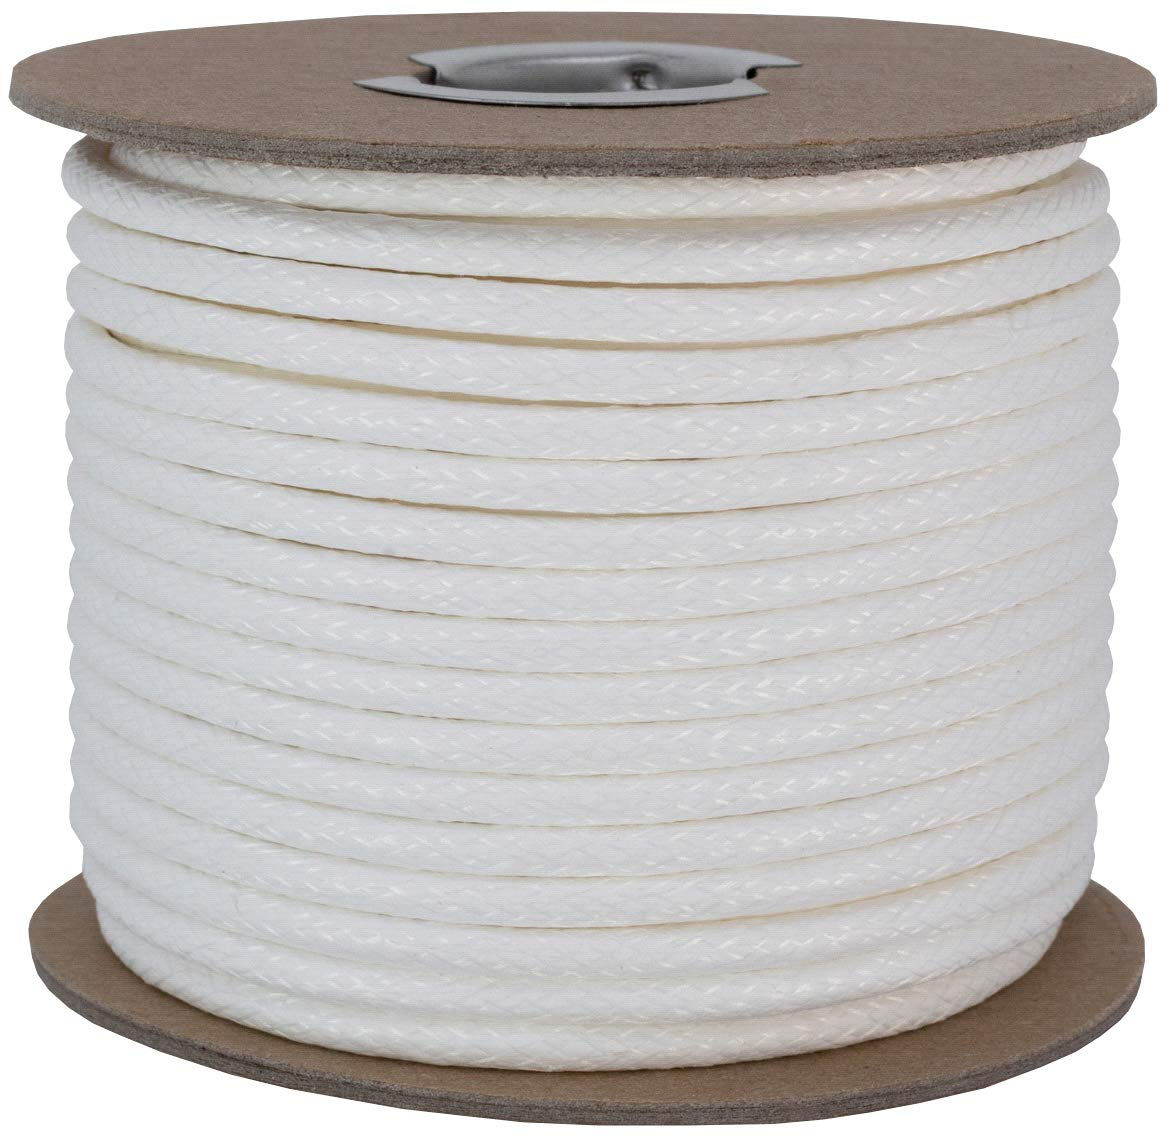 Amazon Com Polyester Welt Cord Cellulose Piping Semi Firm 25 Yard